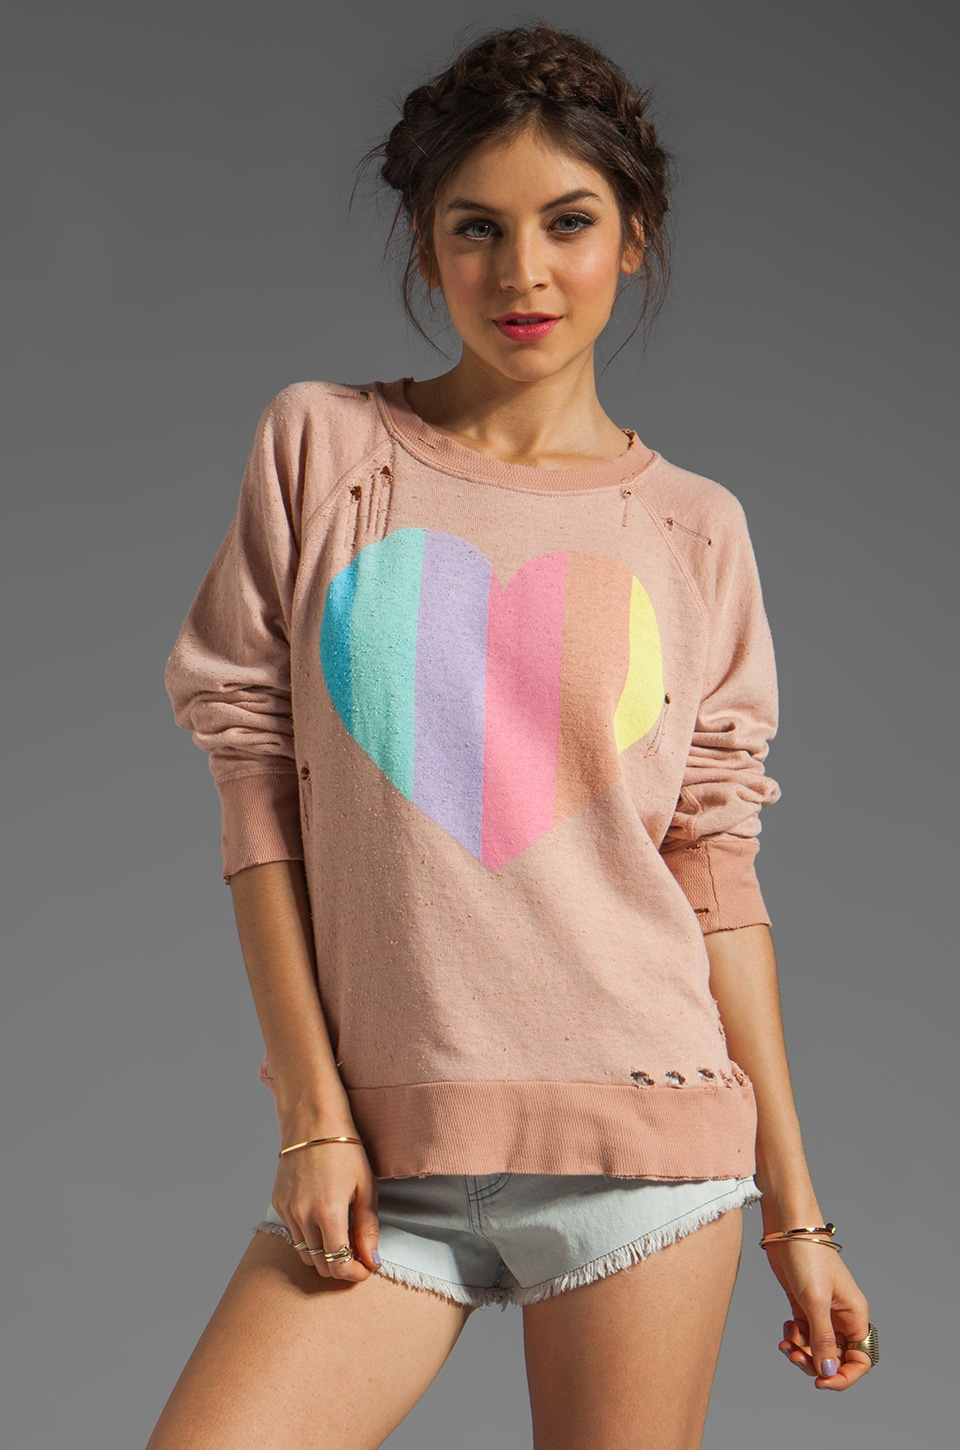 Wildfox Couture Prism Heart Destroyed Sweatshirt in Tan Line